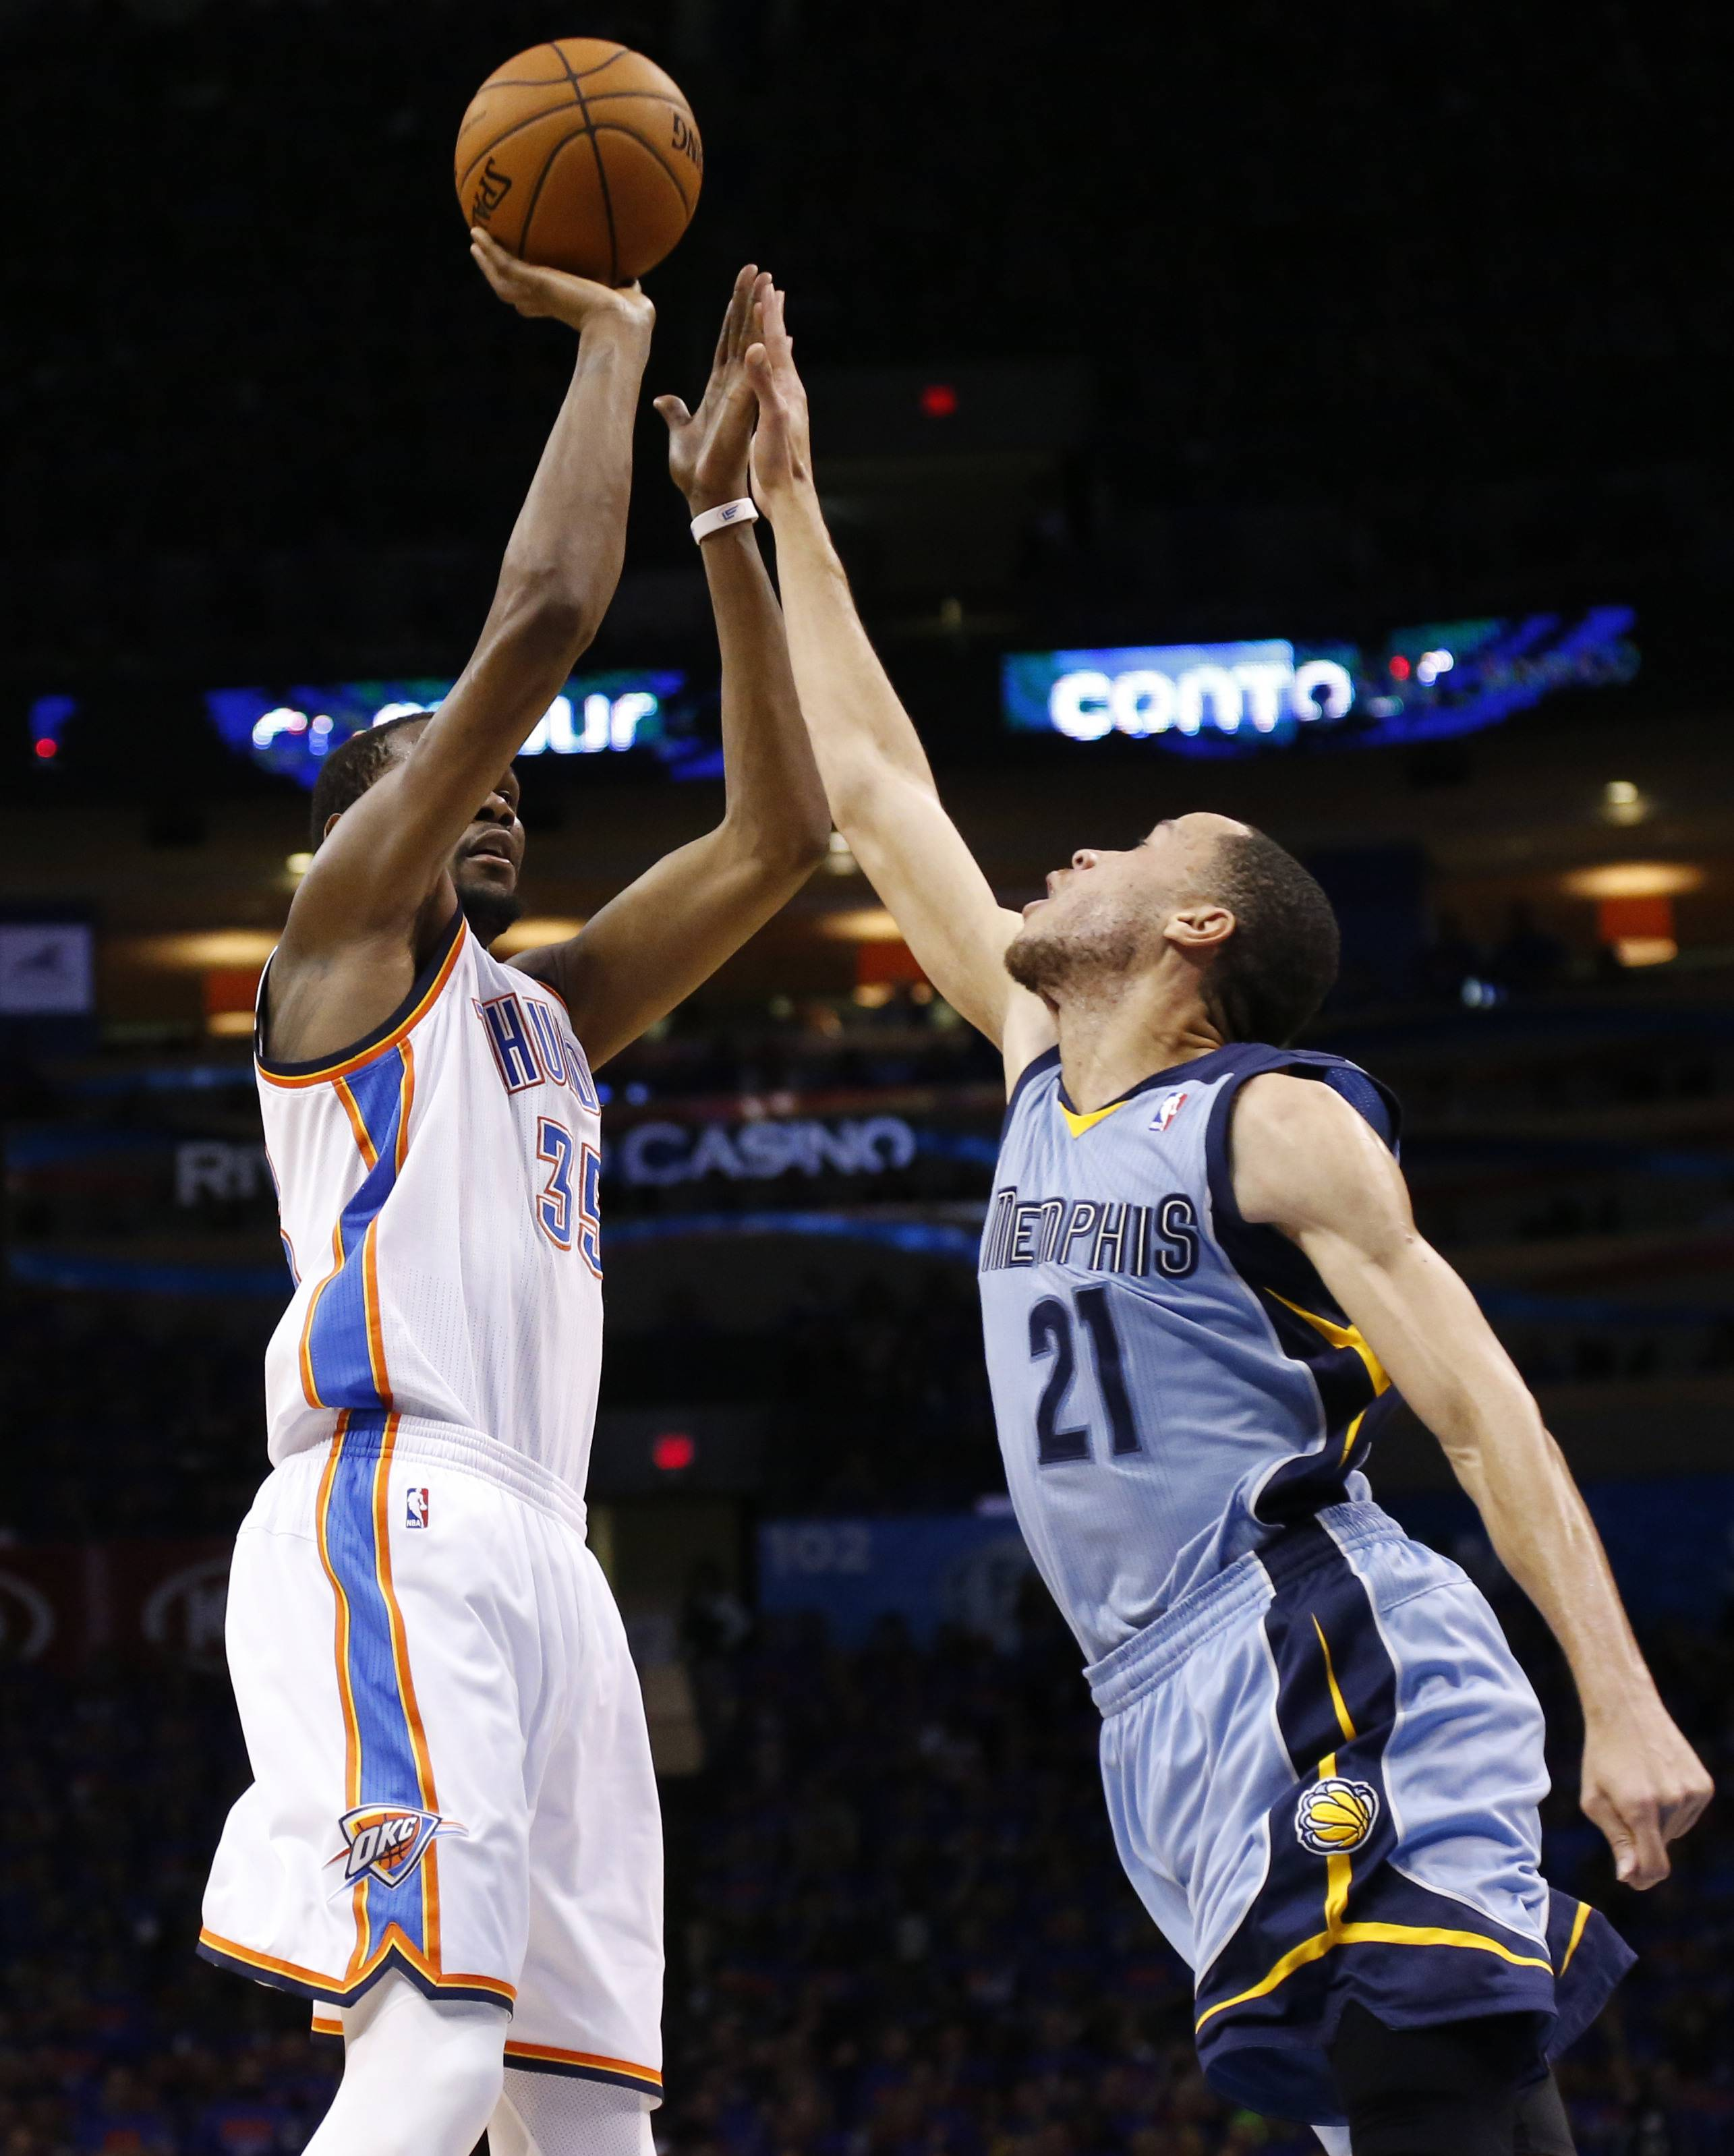 Oklahoma City Thunder forward Kevin Durant (35) shoots over Memphis Grizzlies forward Tayshaun Prince (21) during Game 7 of an opening-round NBA basketball playoff series Saturday in Oklahoma City. The Thunder won 120-109.